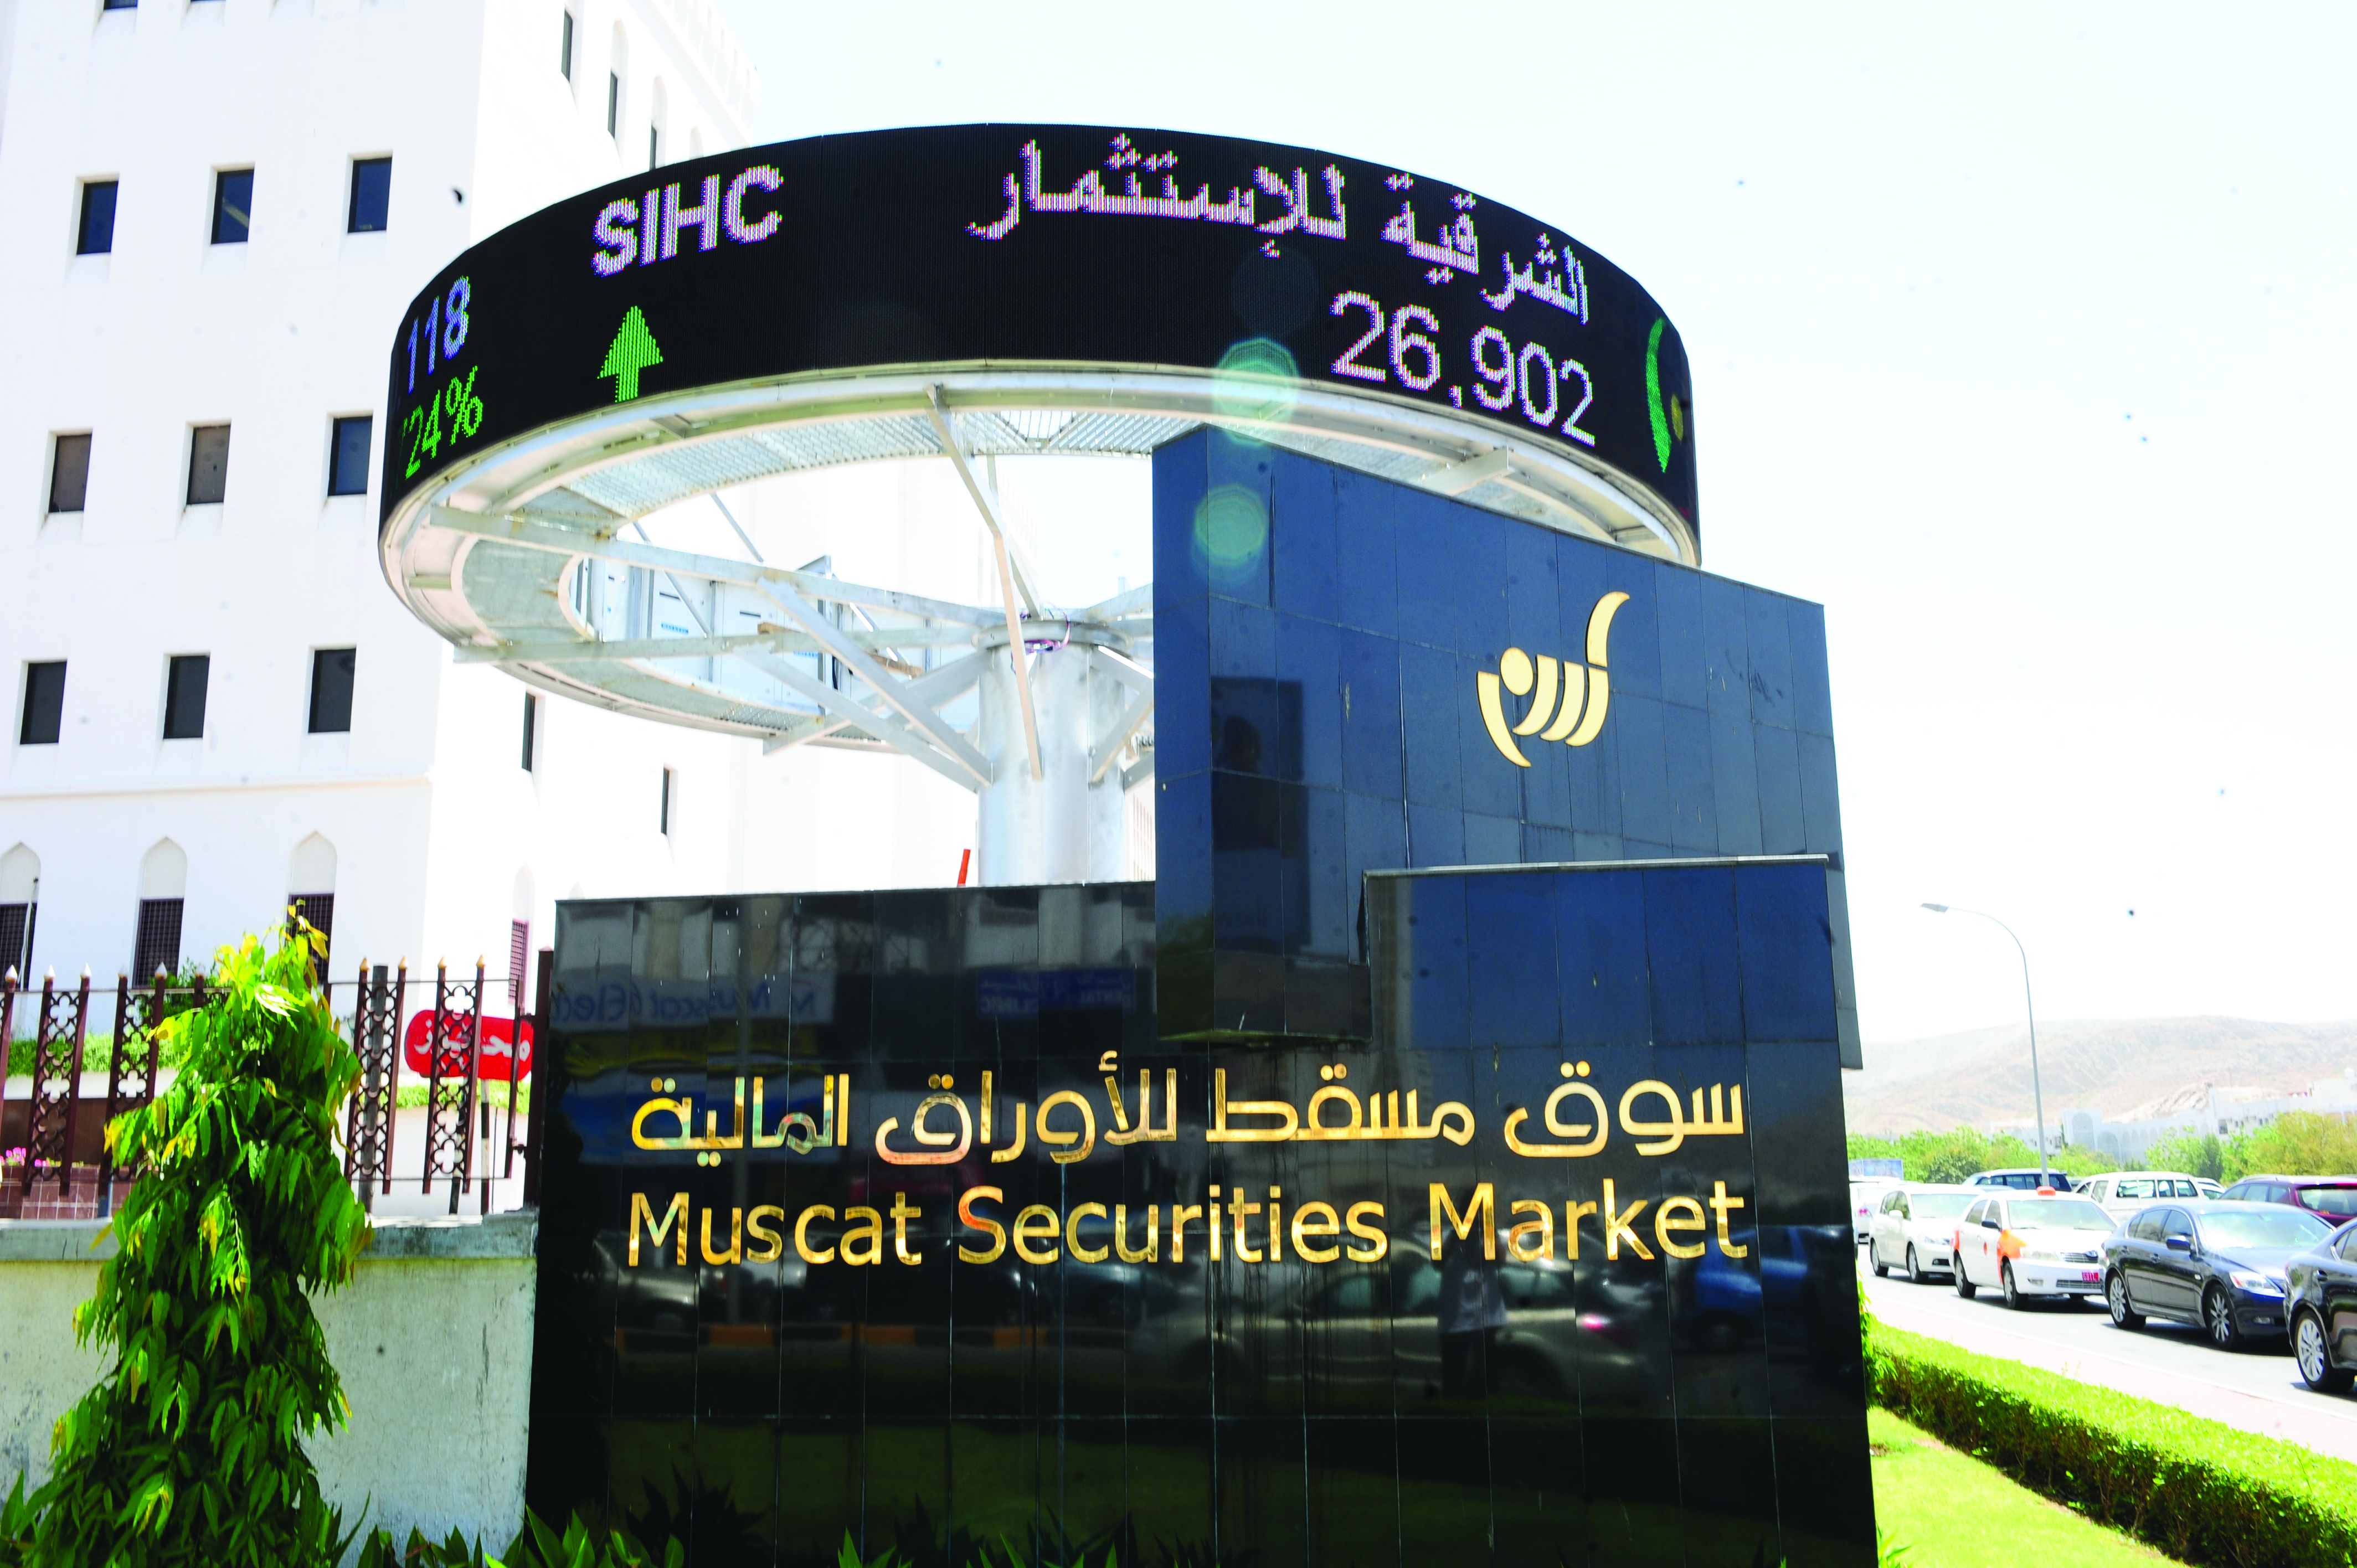 Marginal fall in revenue of major listed companies expected